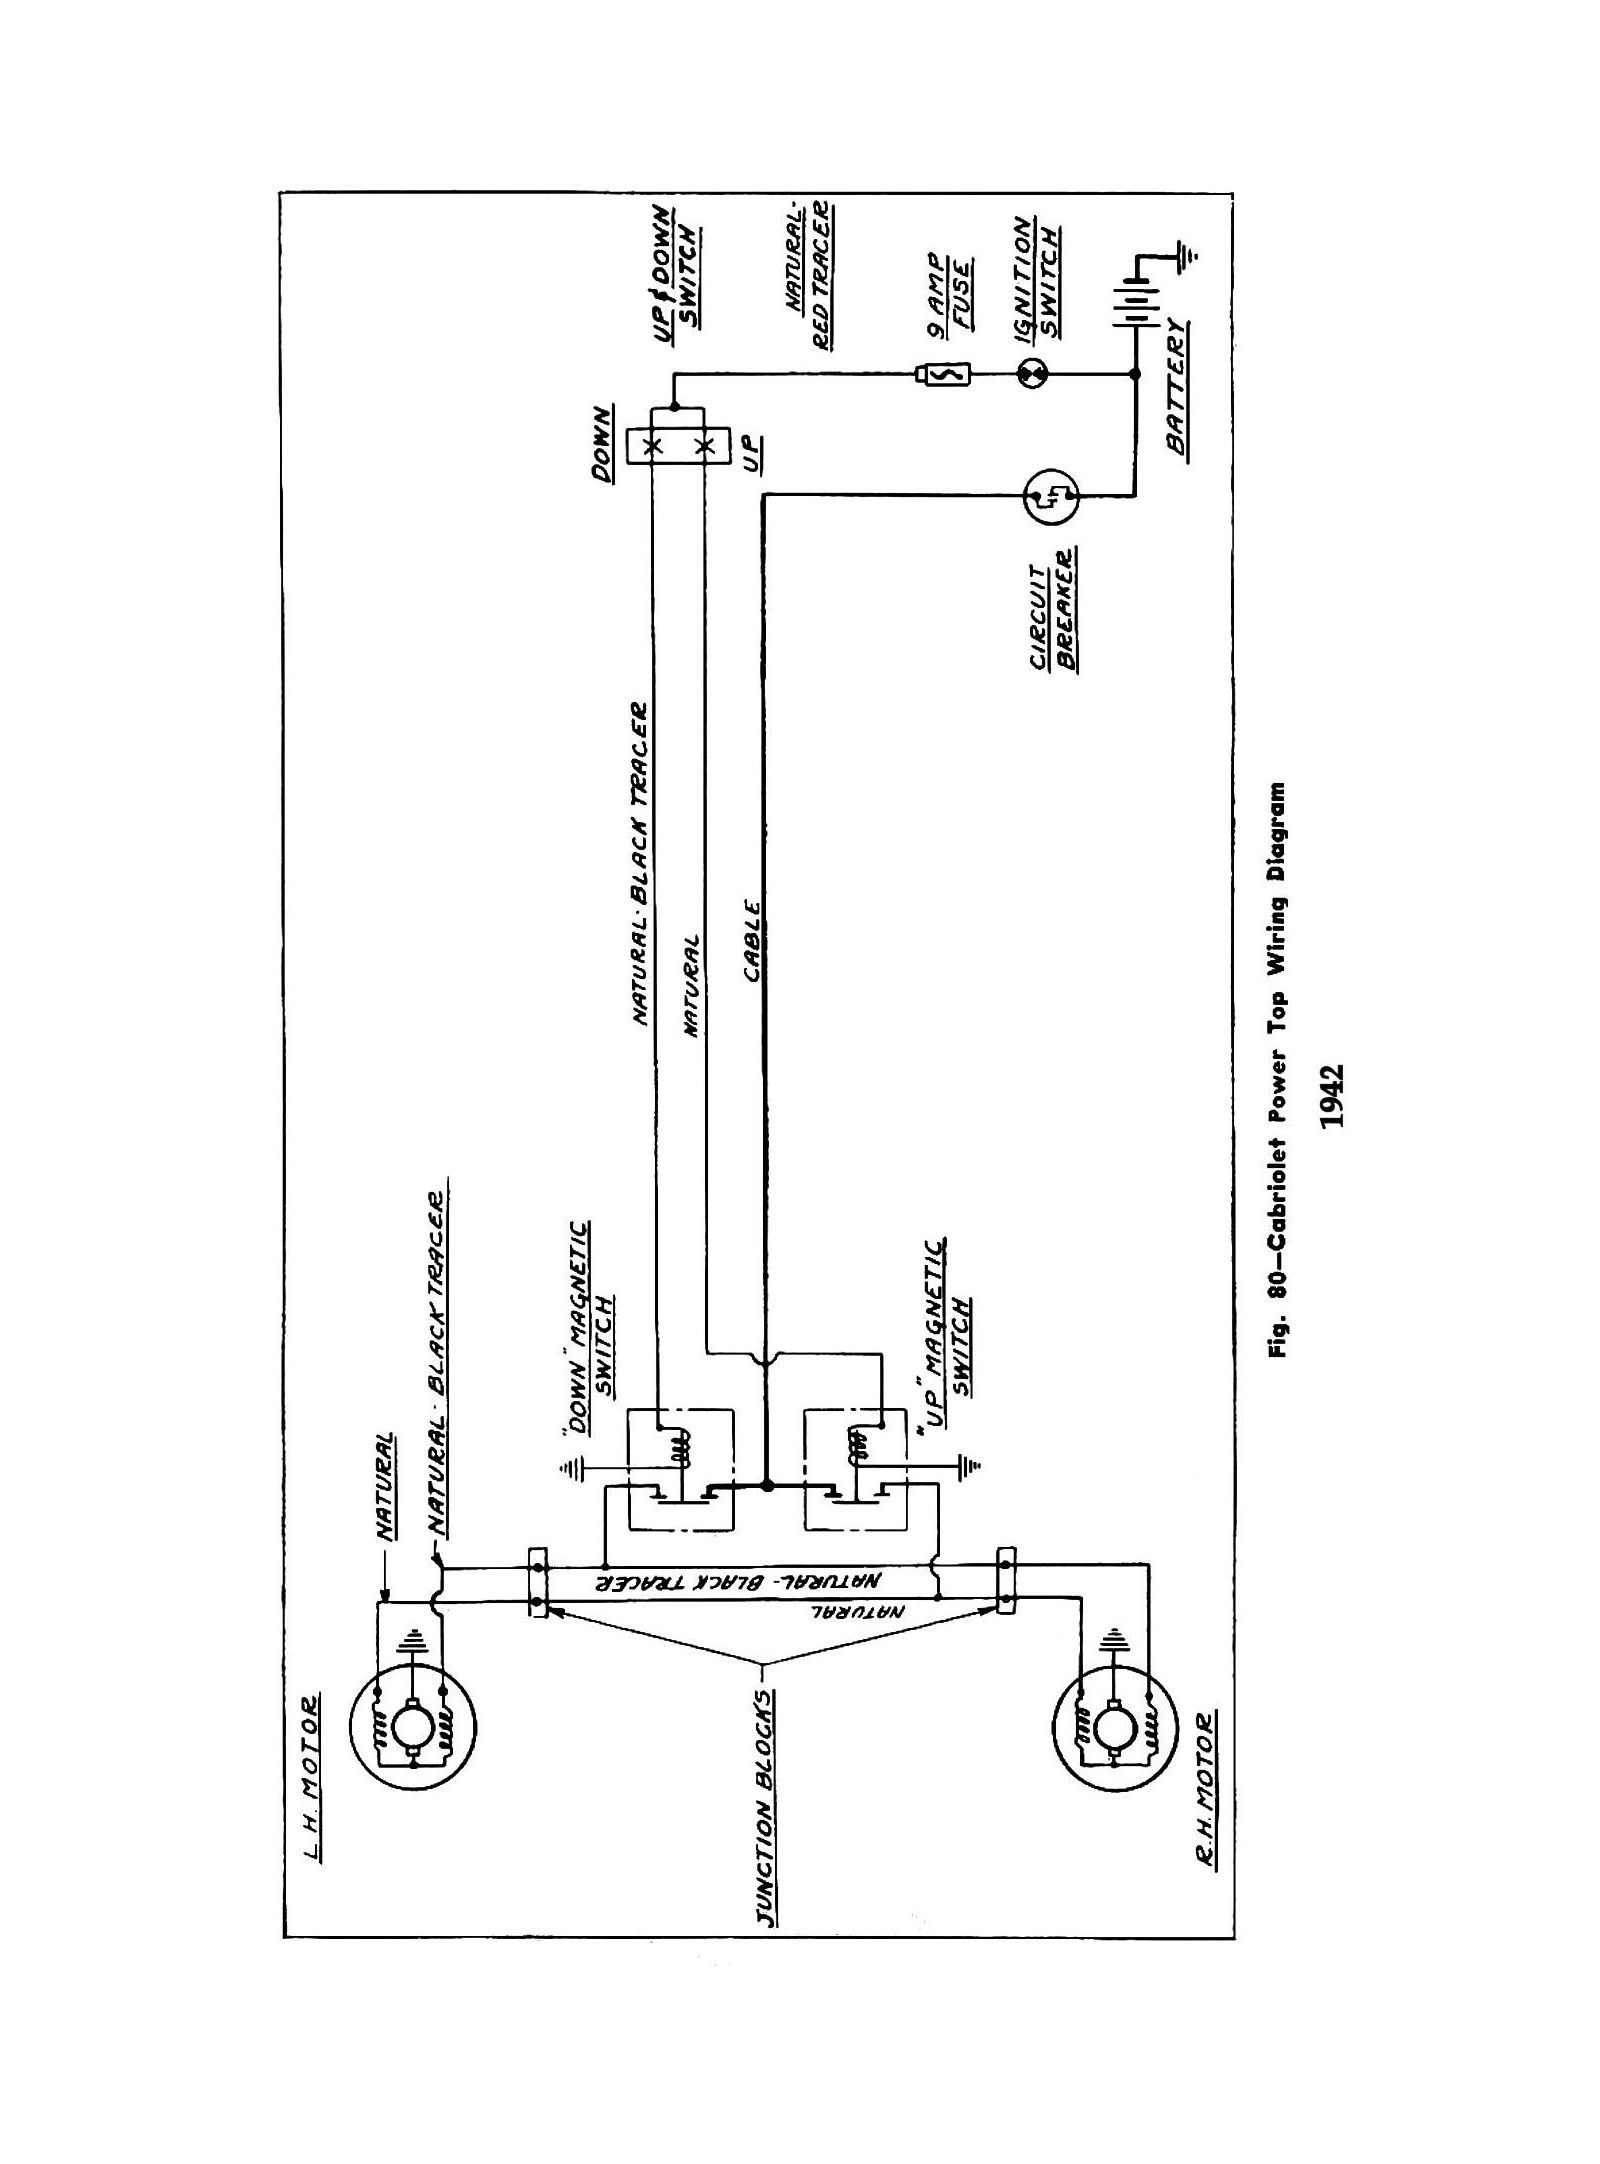 1950 Chevy Pickup Wiring Diagram The Portal And Forum Of 1996 Truck Harness Todays Rh 10 15 7 1813weddingbarn Com 2006 Silverado Light